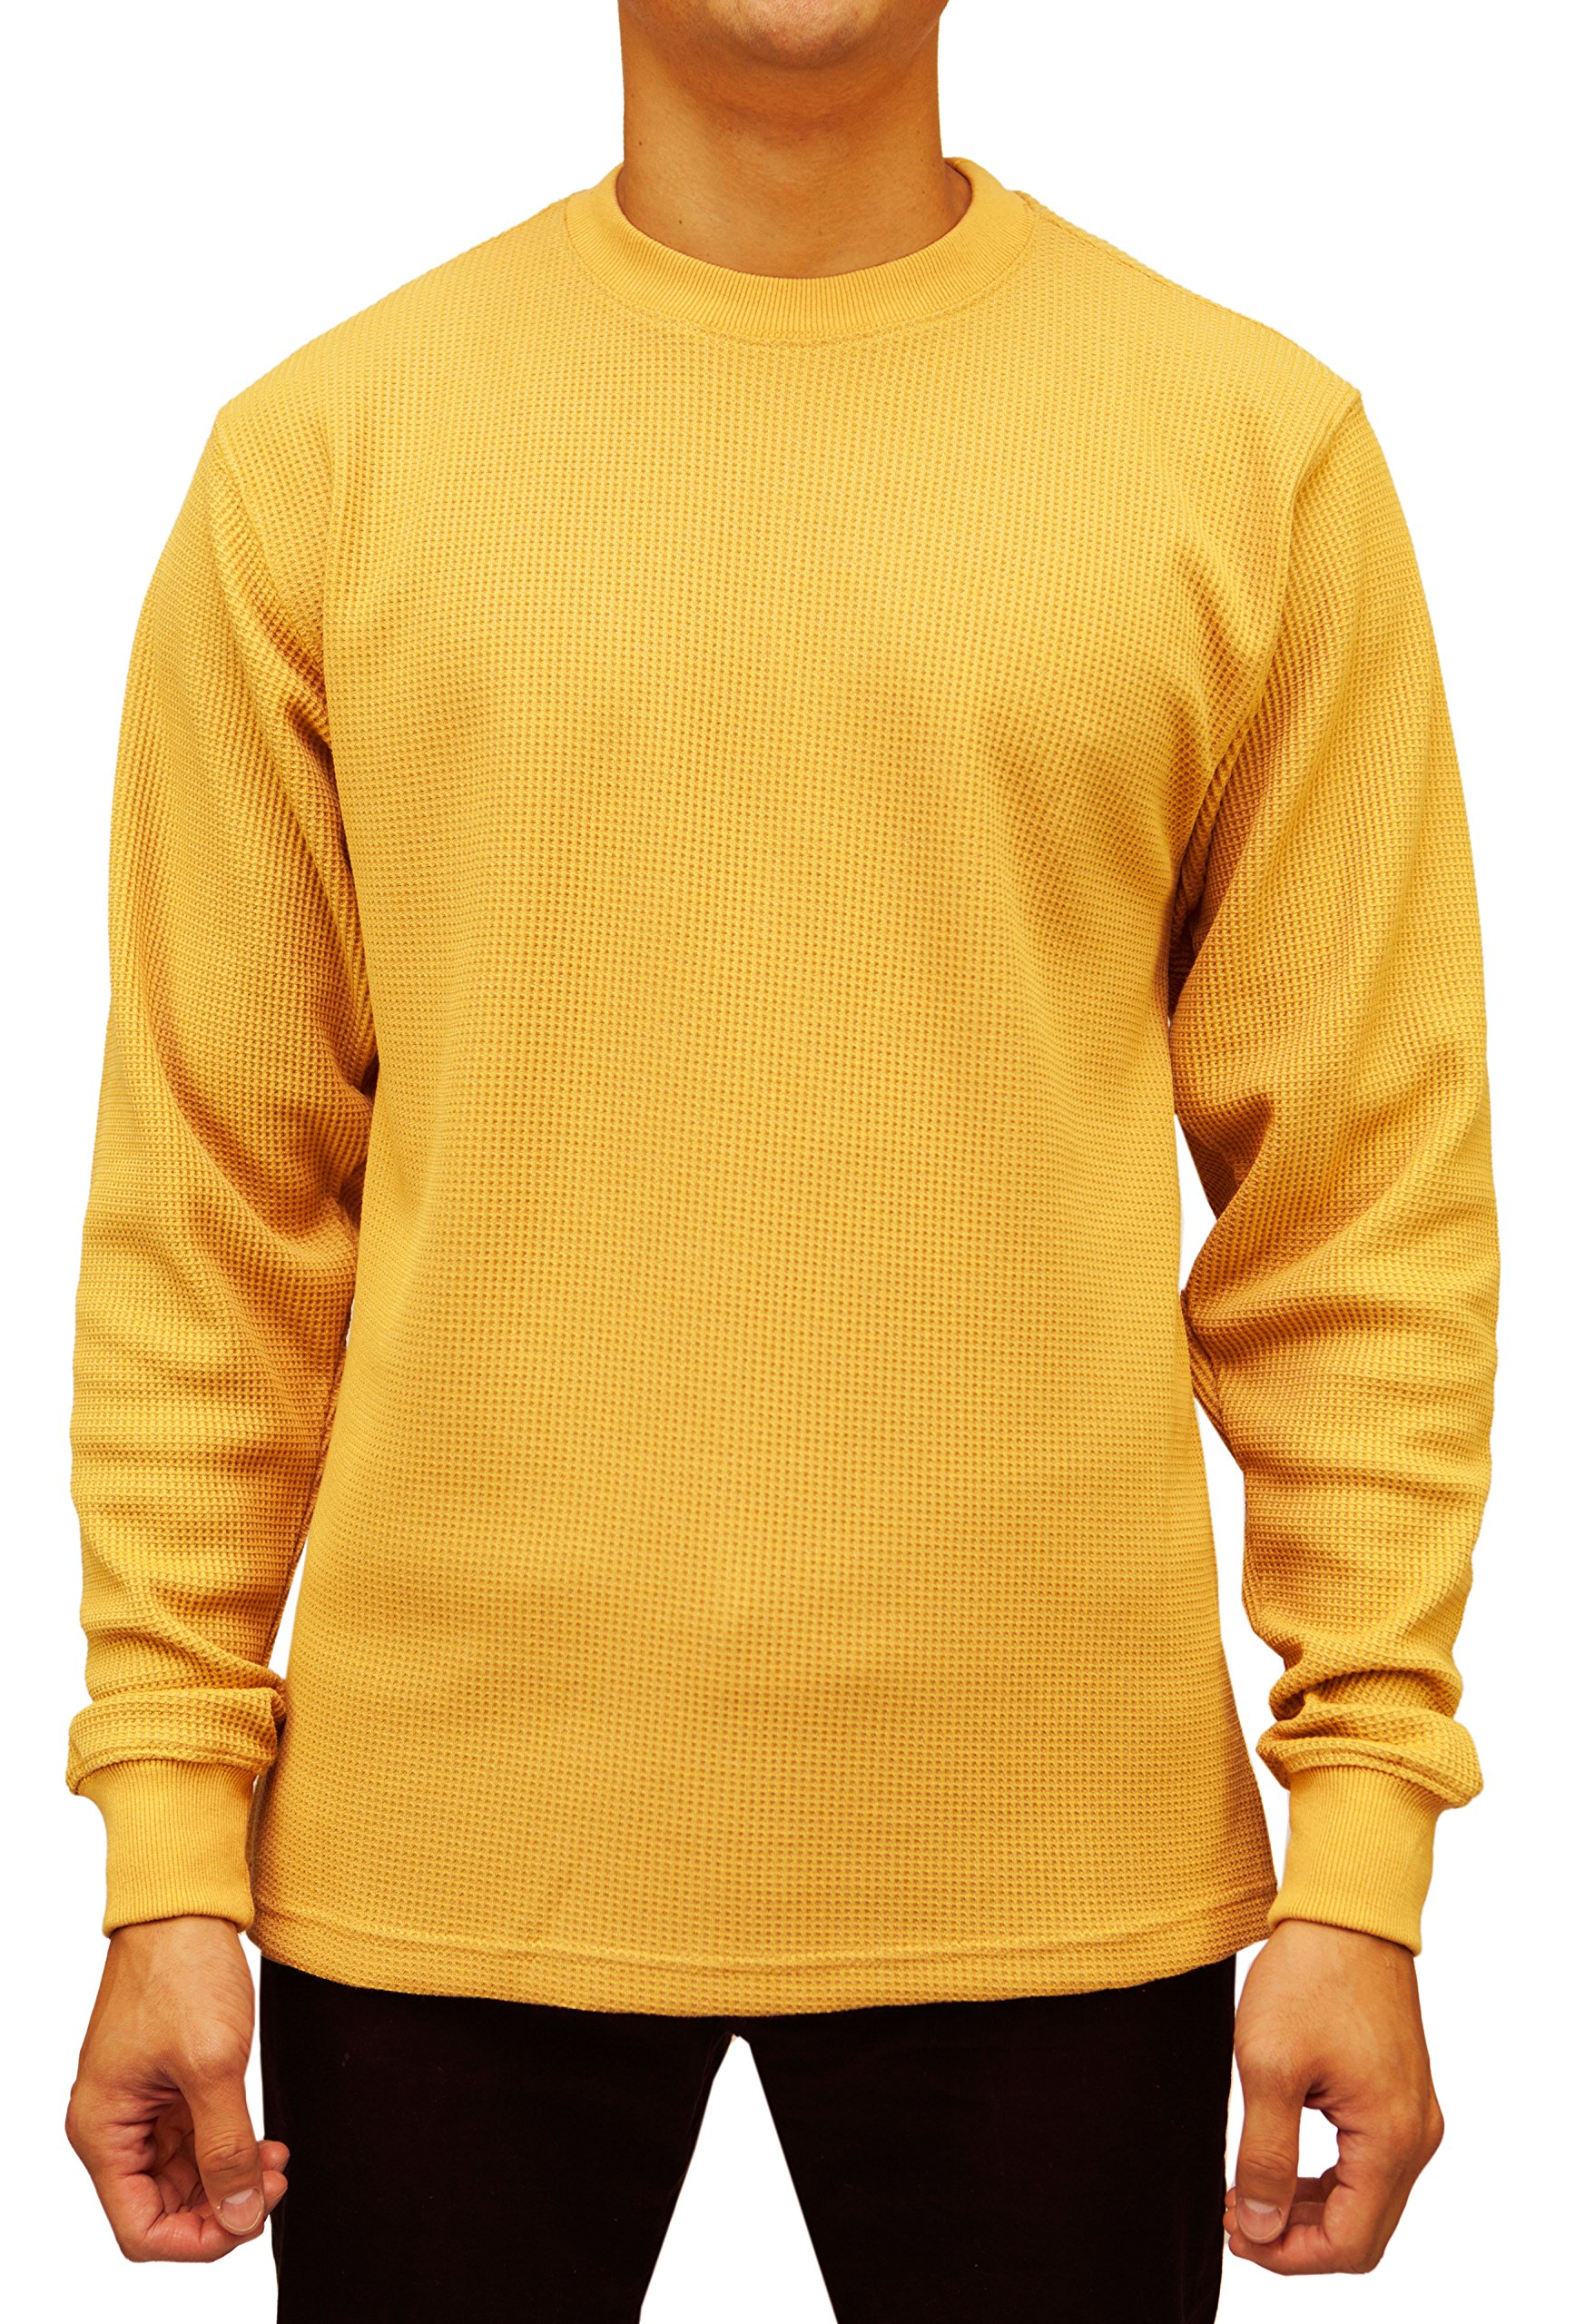 Access Men's Big & Tall Heavyweight Long Sleeve Thermal Crew Neck Top (3X, Wheat) by Access